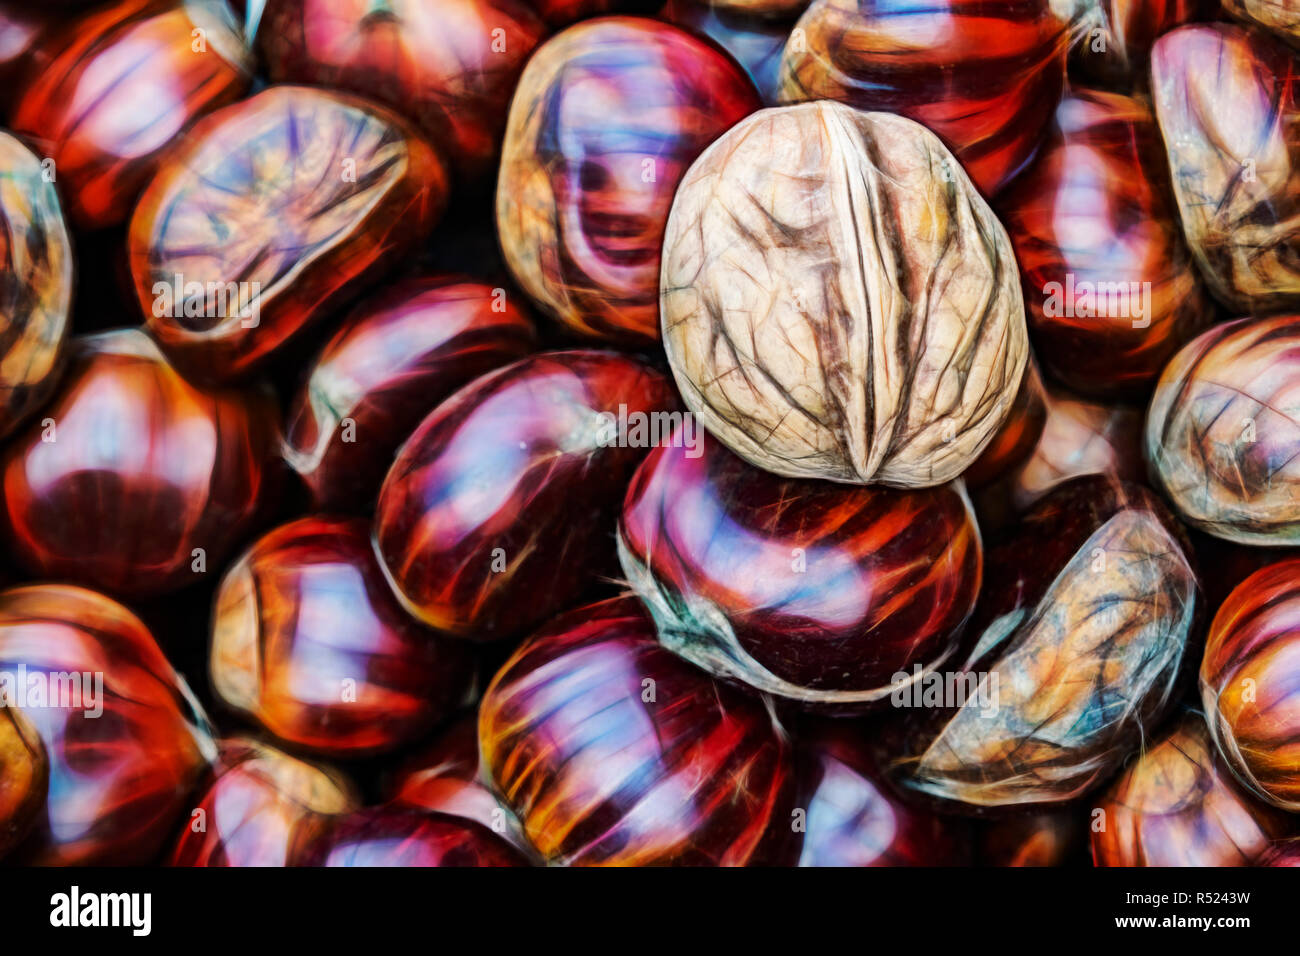 close up ready for sale shelled walnuts and chestnuts in greengrocer Stock Photo